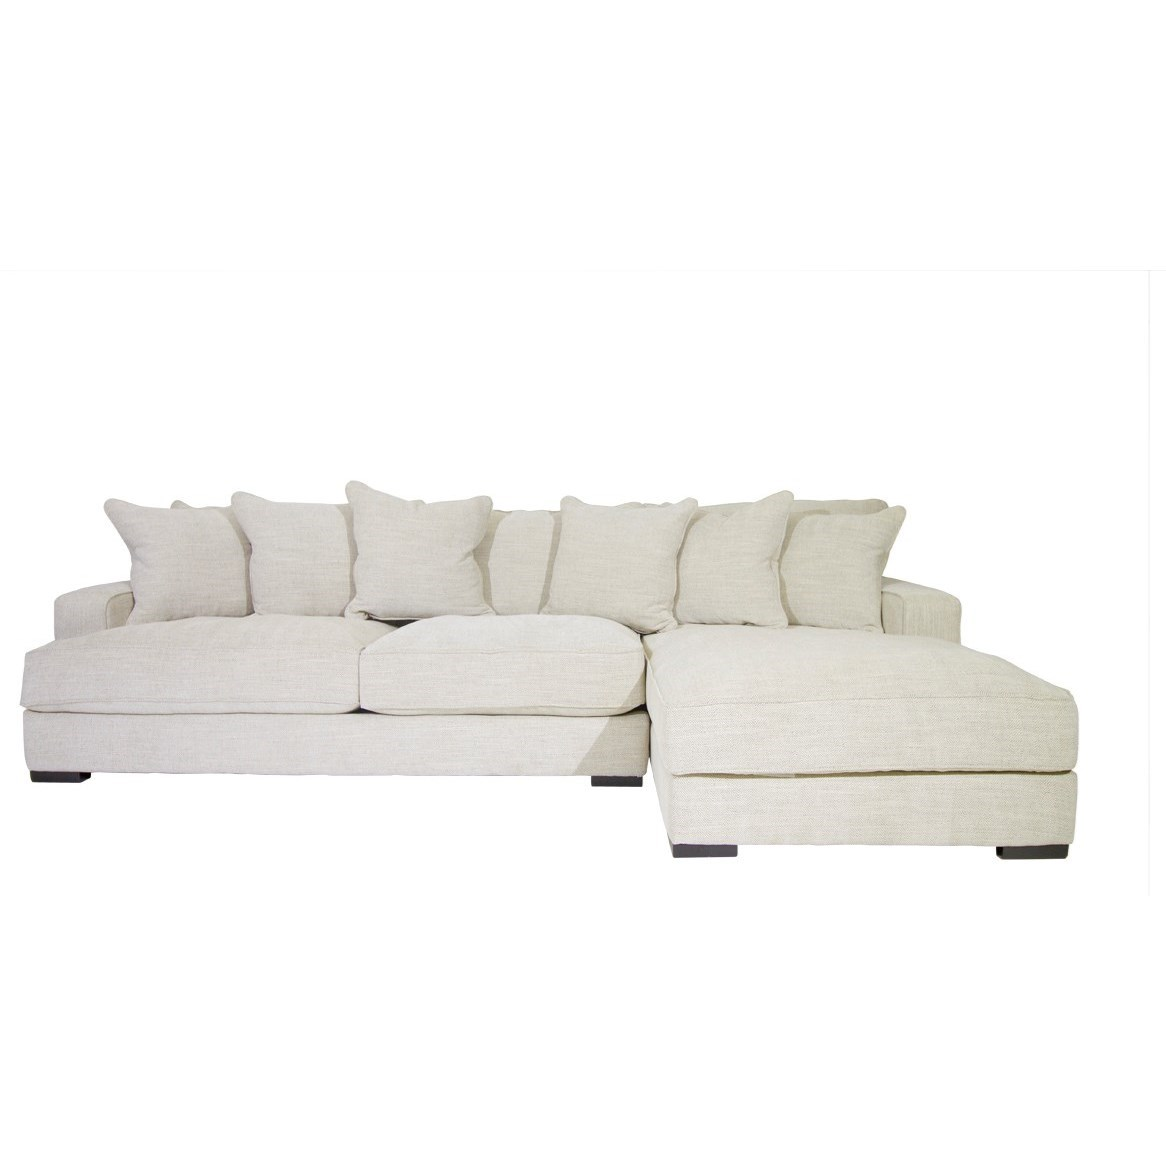 Jonathan Louis Axis II Sectional - Item Number: 334-35L+82R-Weston Bone